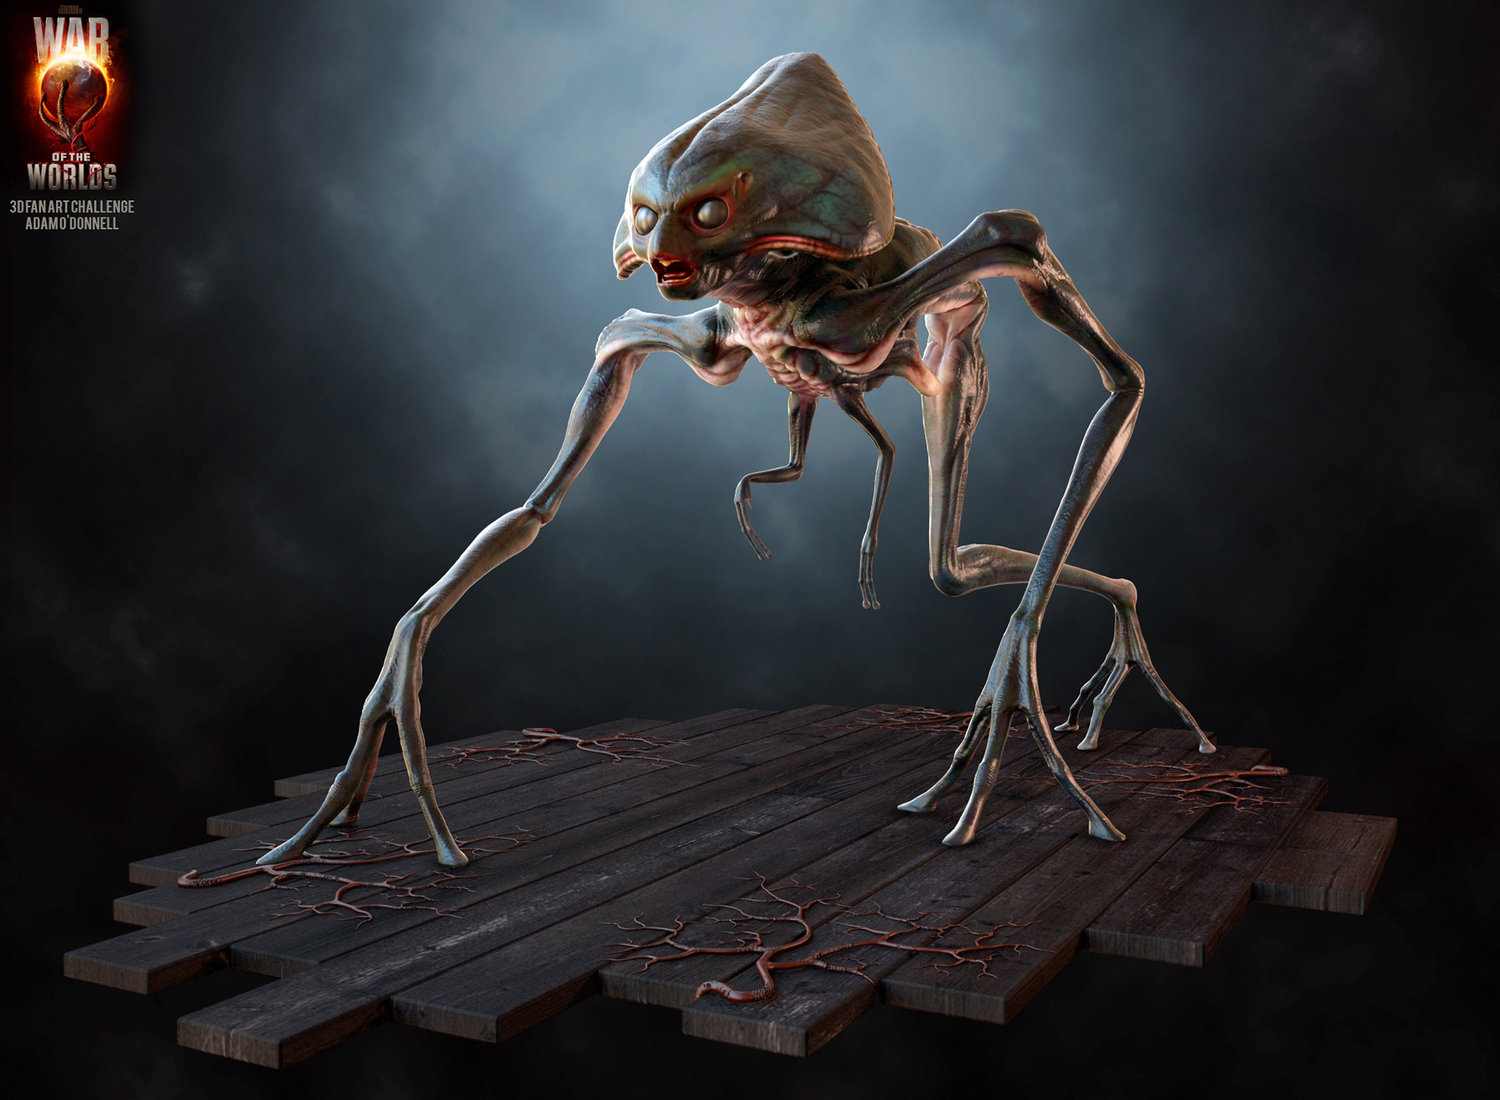 Alien (Spielberg's War of the Worlds)